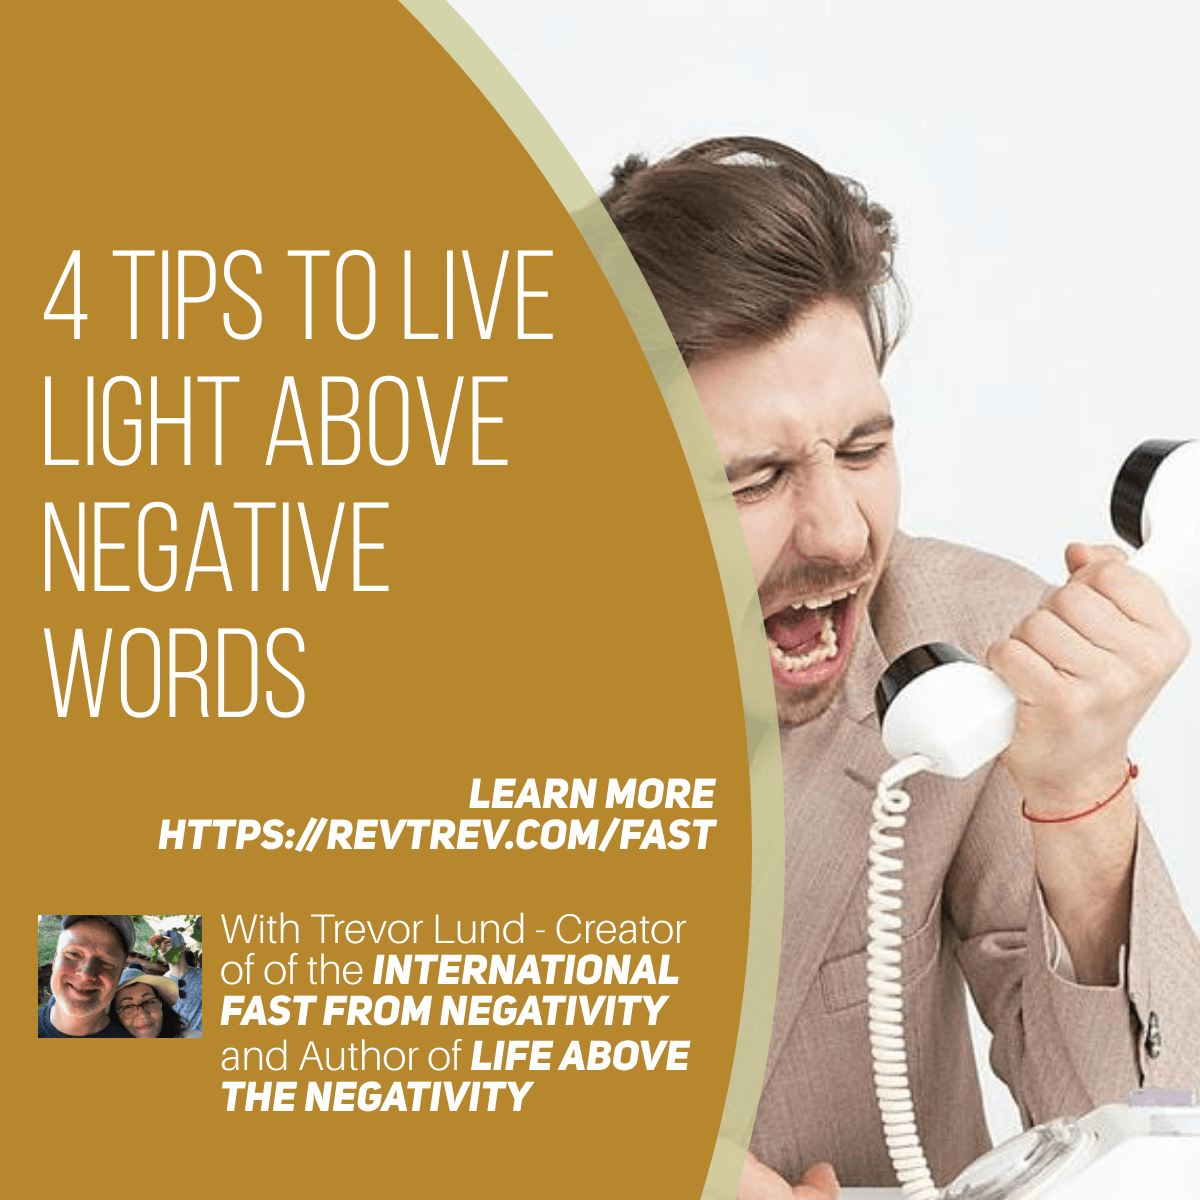 4 Tips to Live LIGHT Above Negative Words via @trevorlund